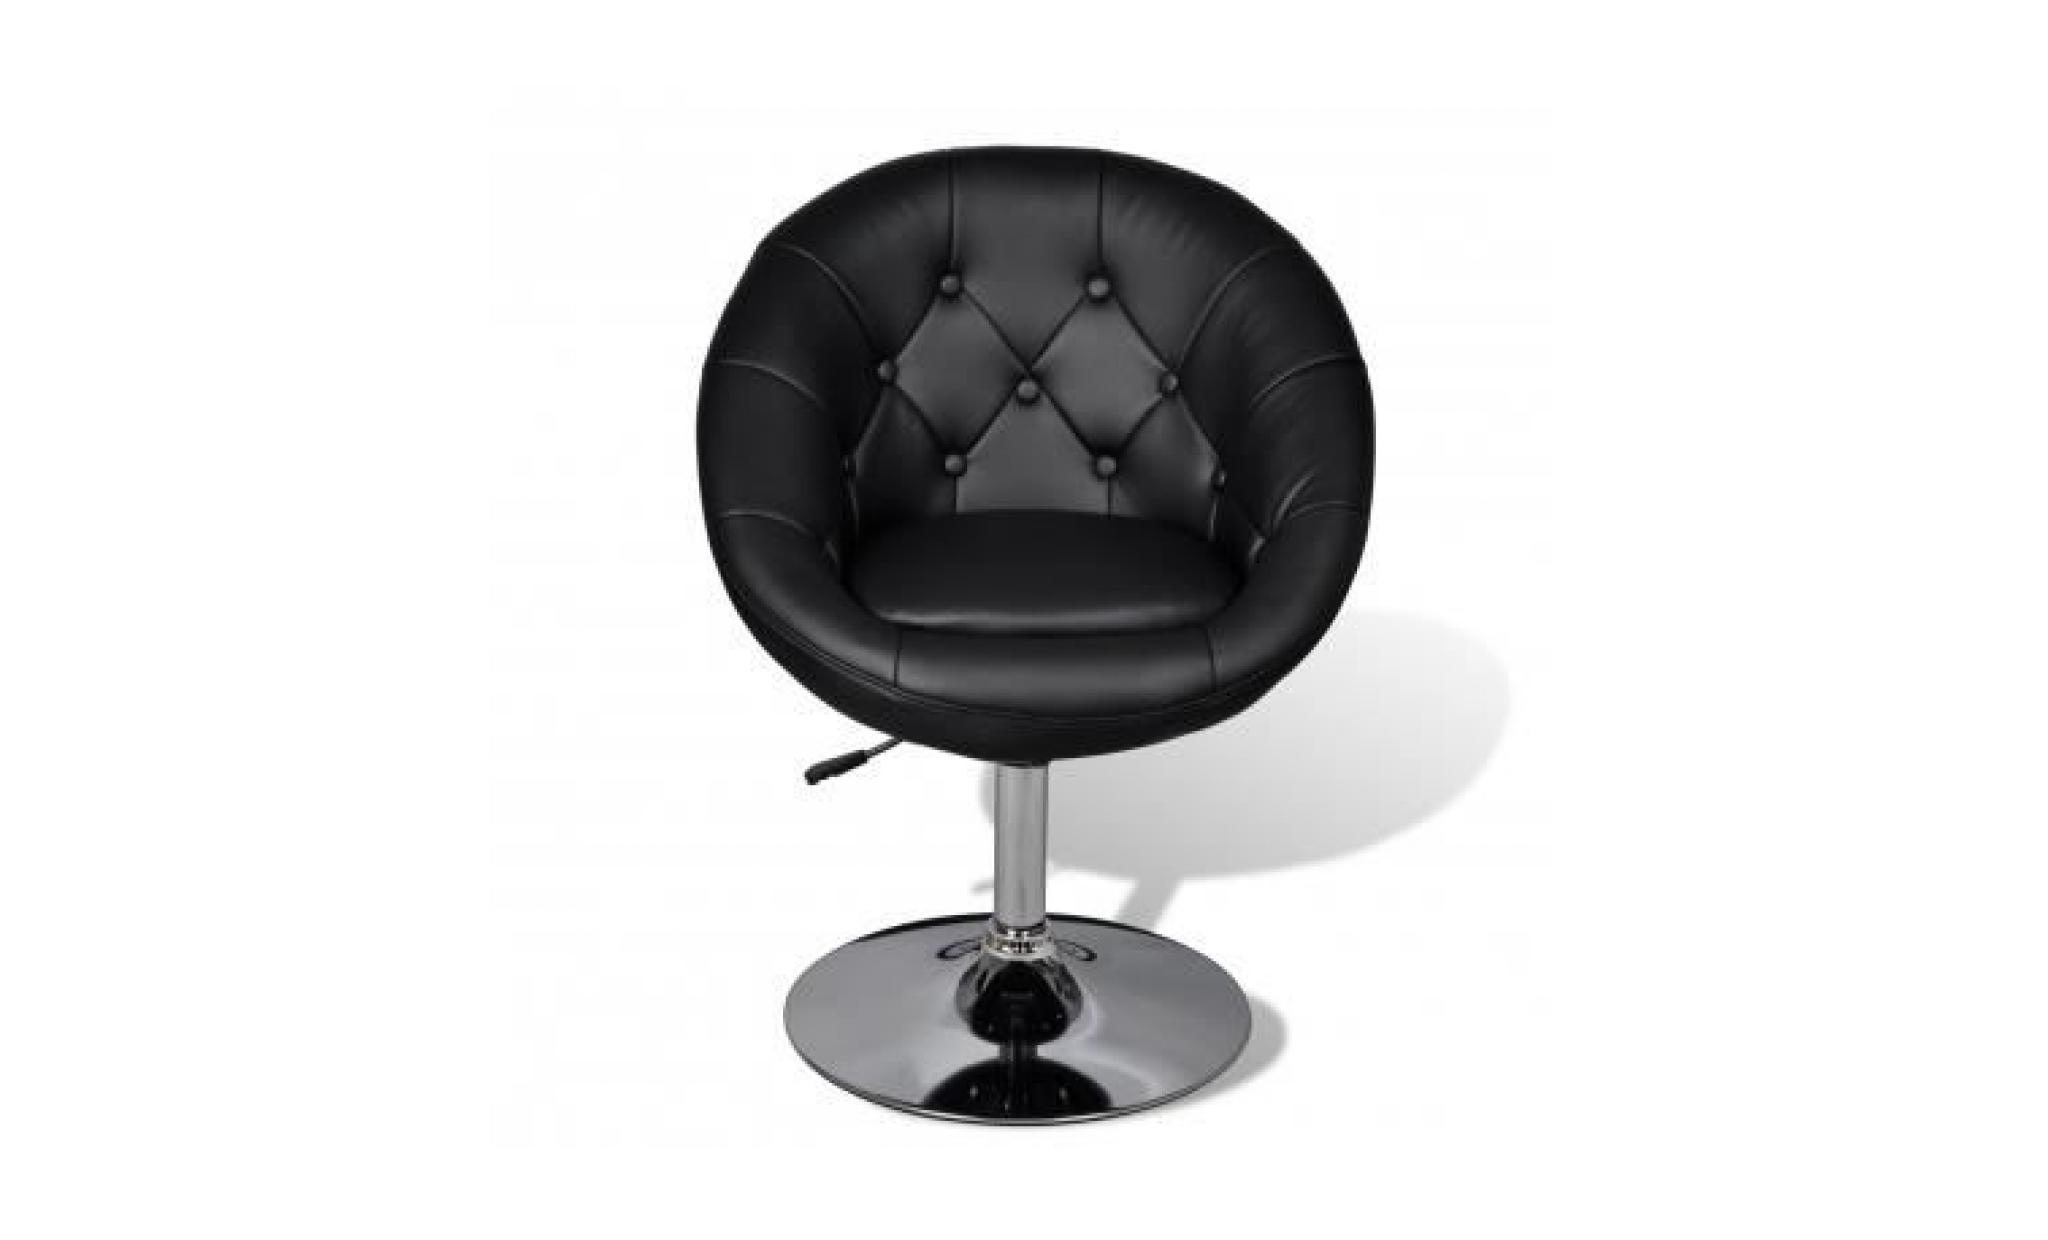 fauteuil r tro capitonn noir pied tulipe chrom achat. Black Bedroom Furniture Sets. Home Design Ideas